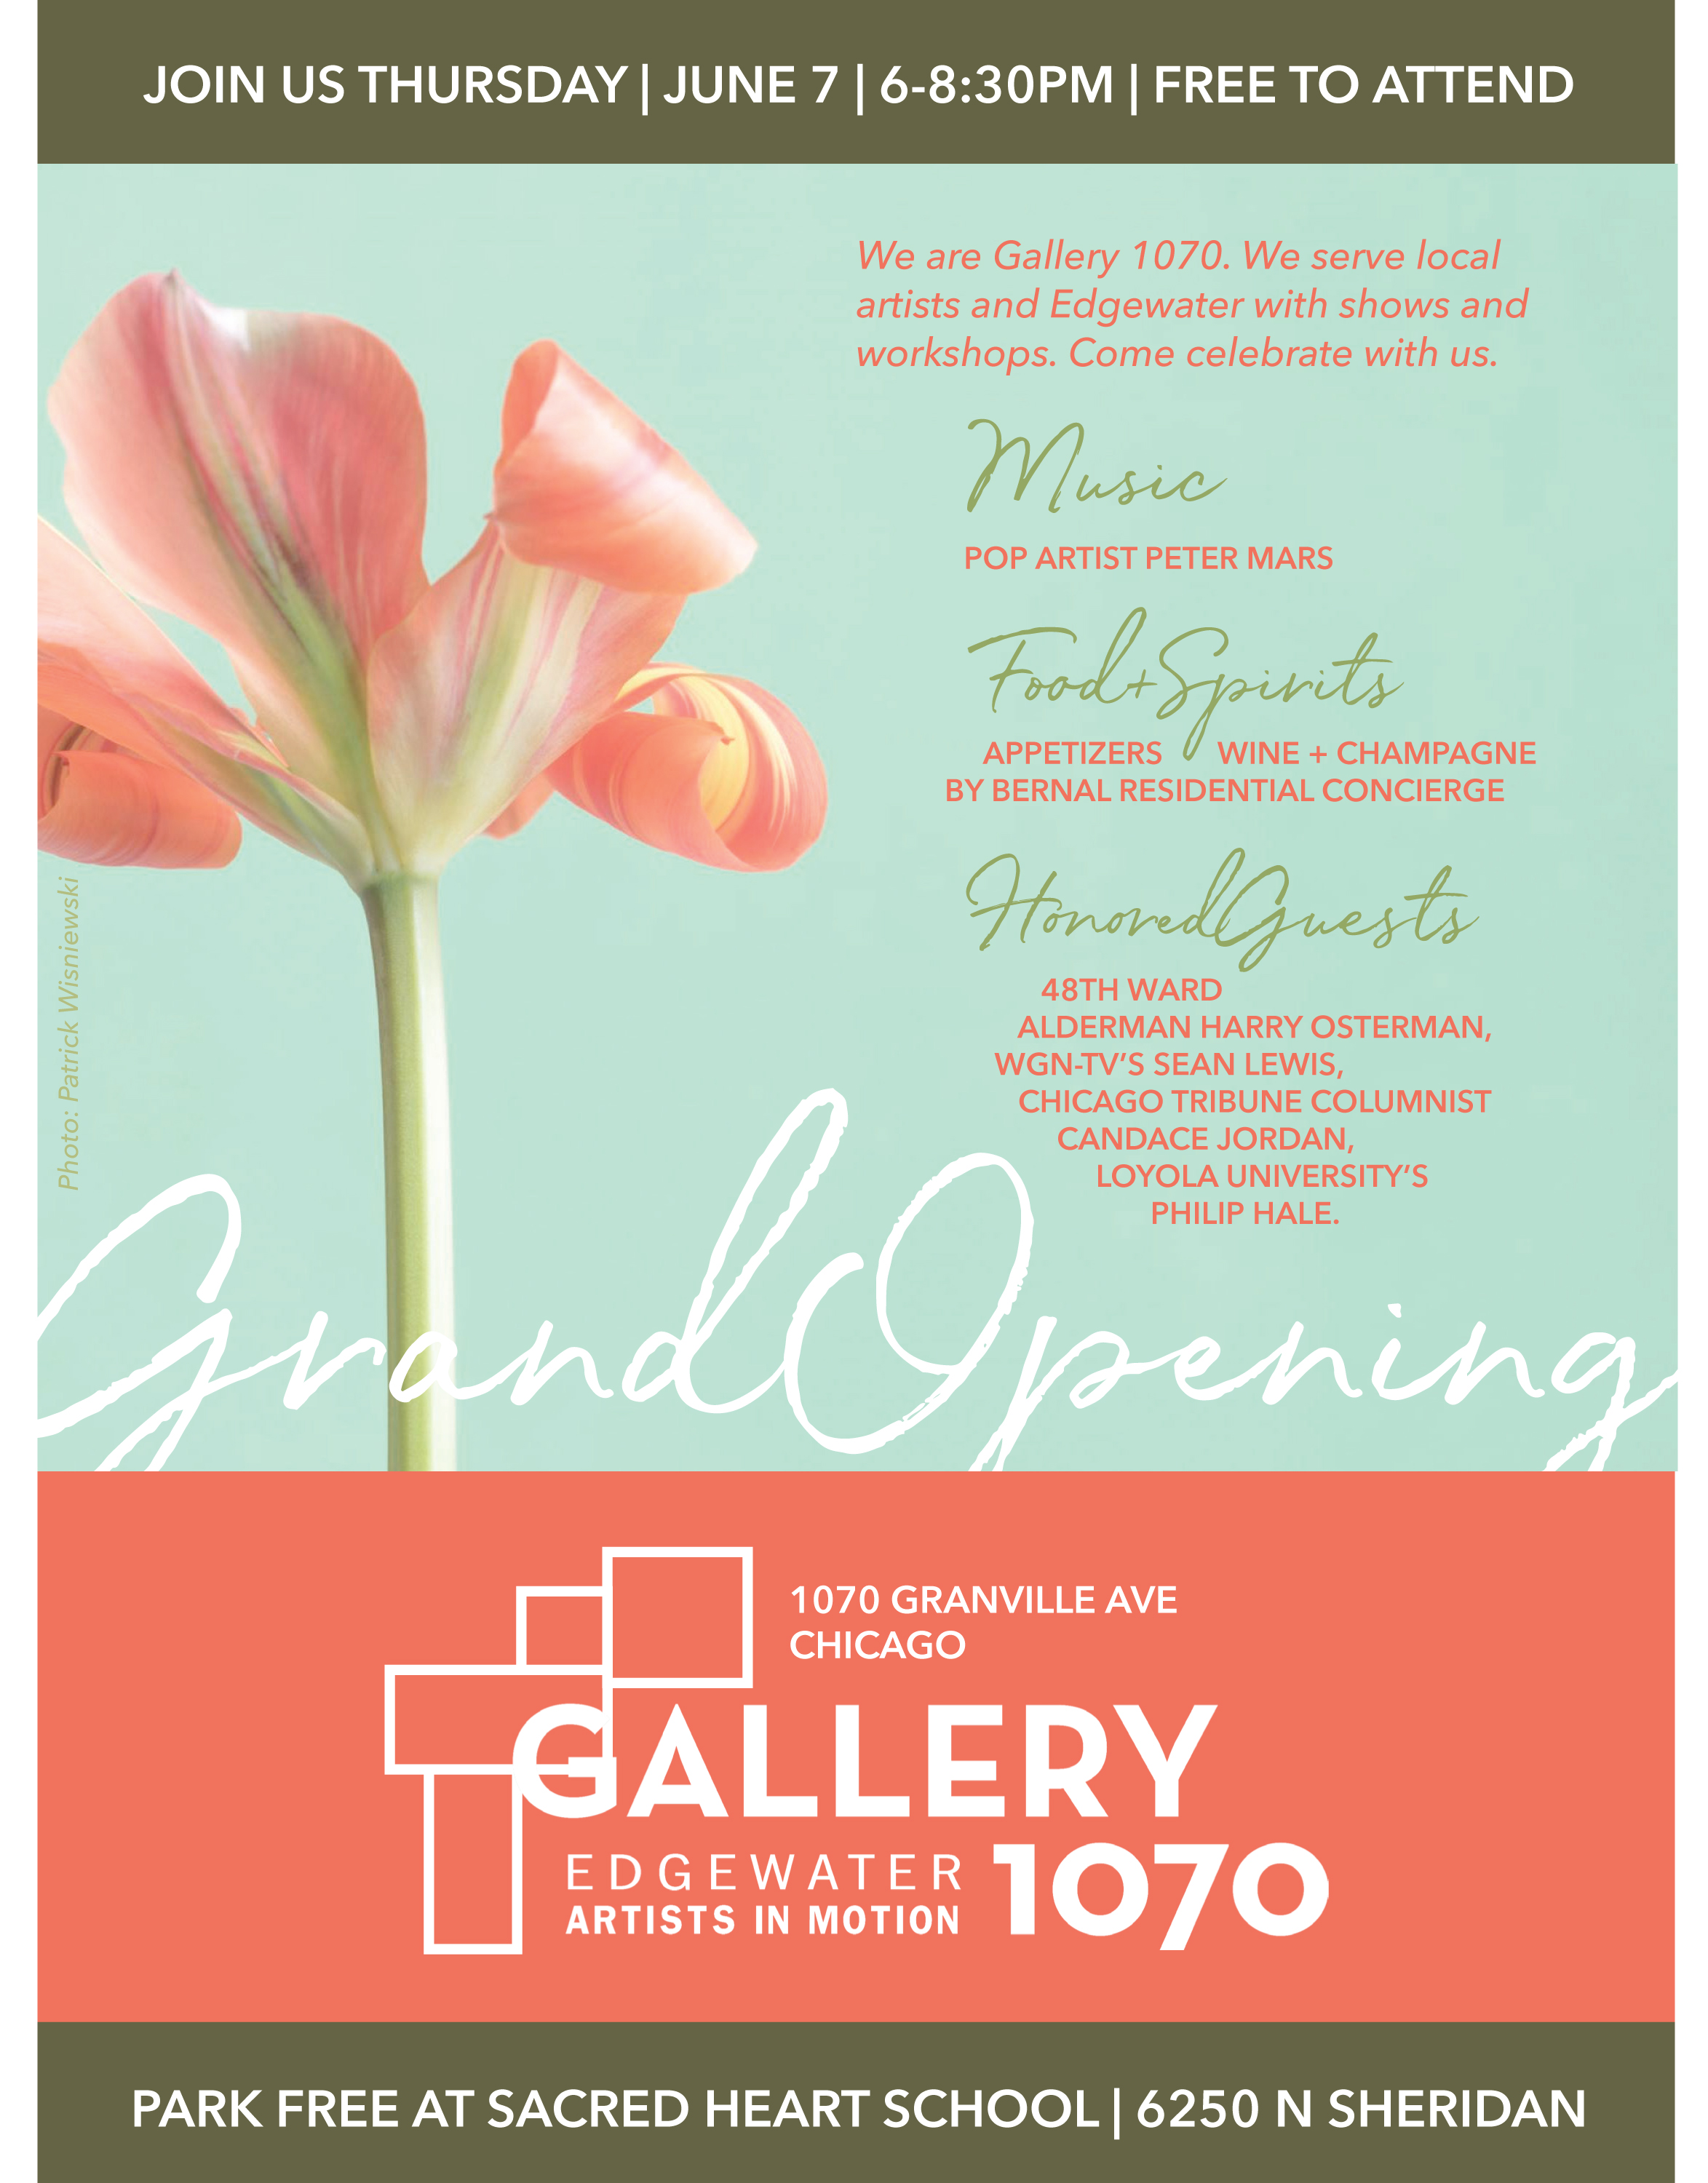 Gallery 1070 Invitation